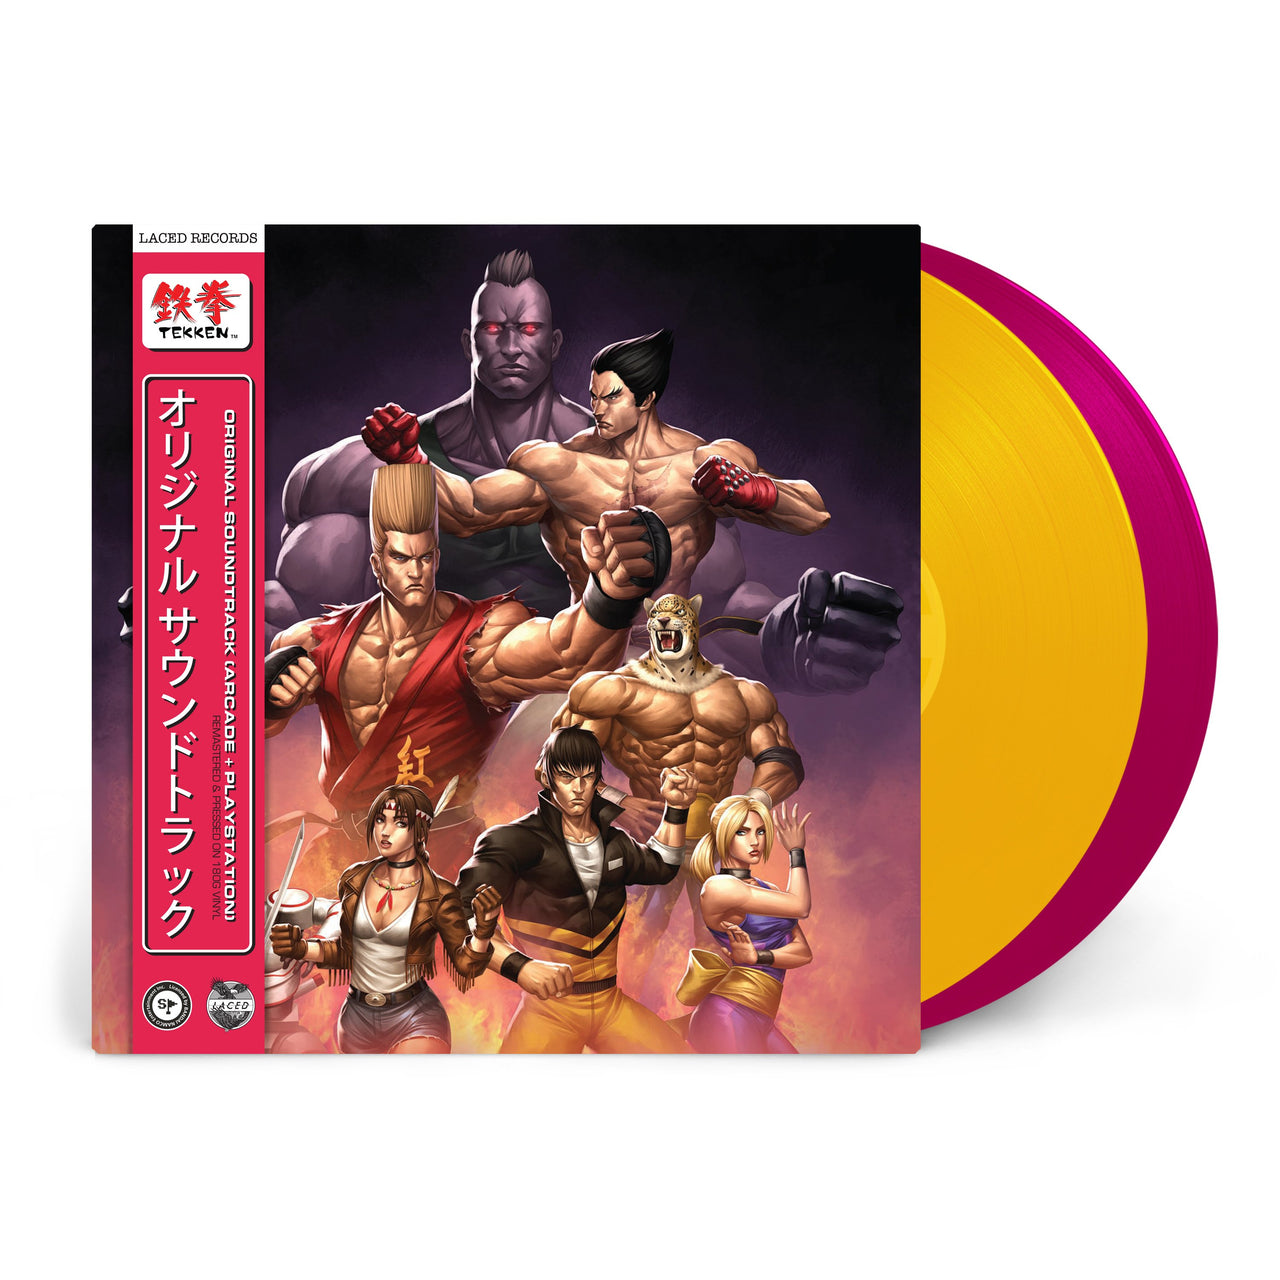 TEKKEN (Limited Edition Deluxe Double Vinyl)